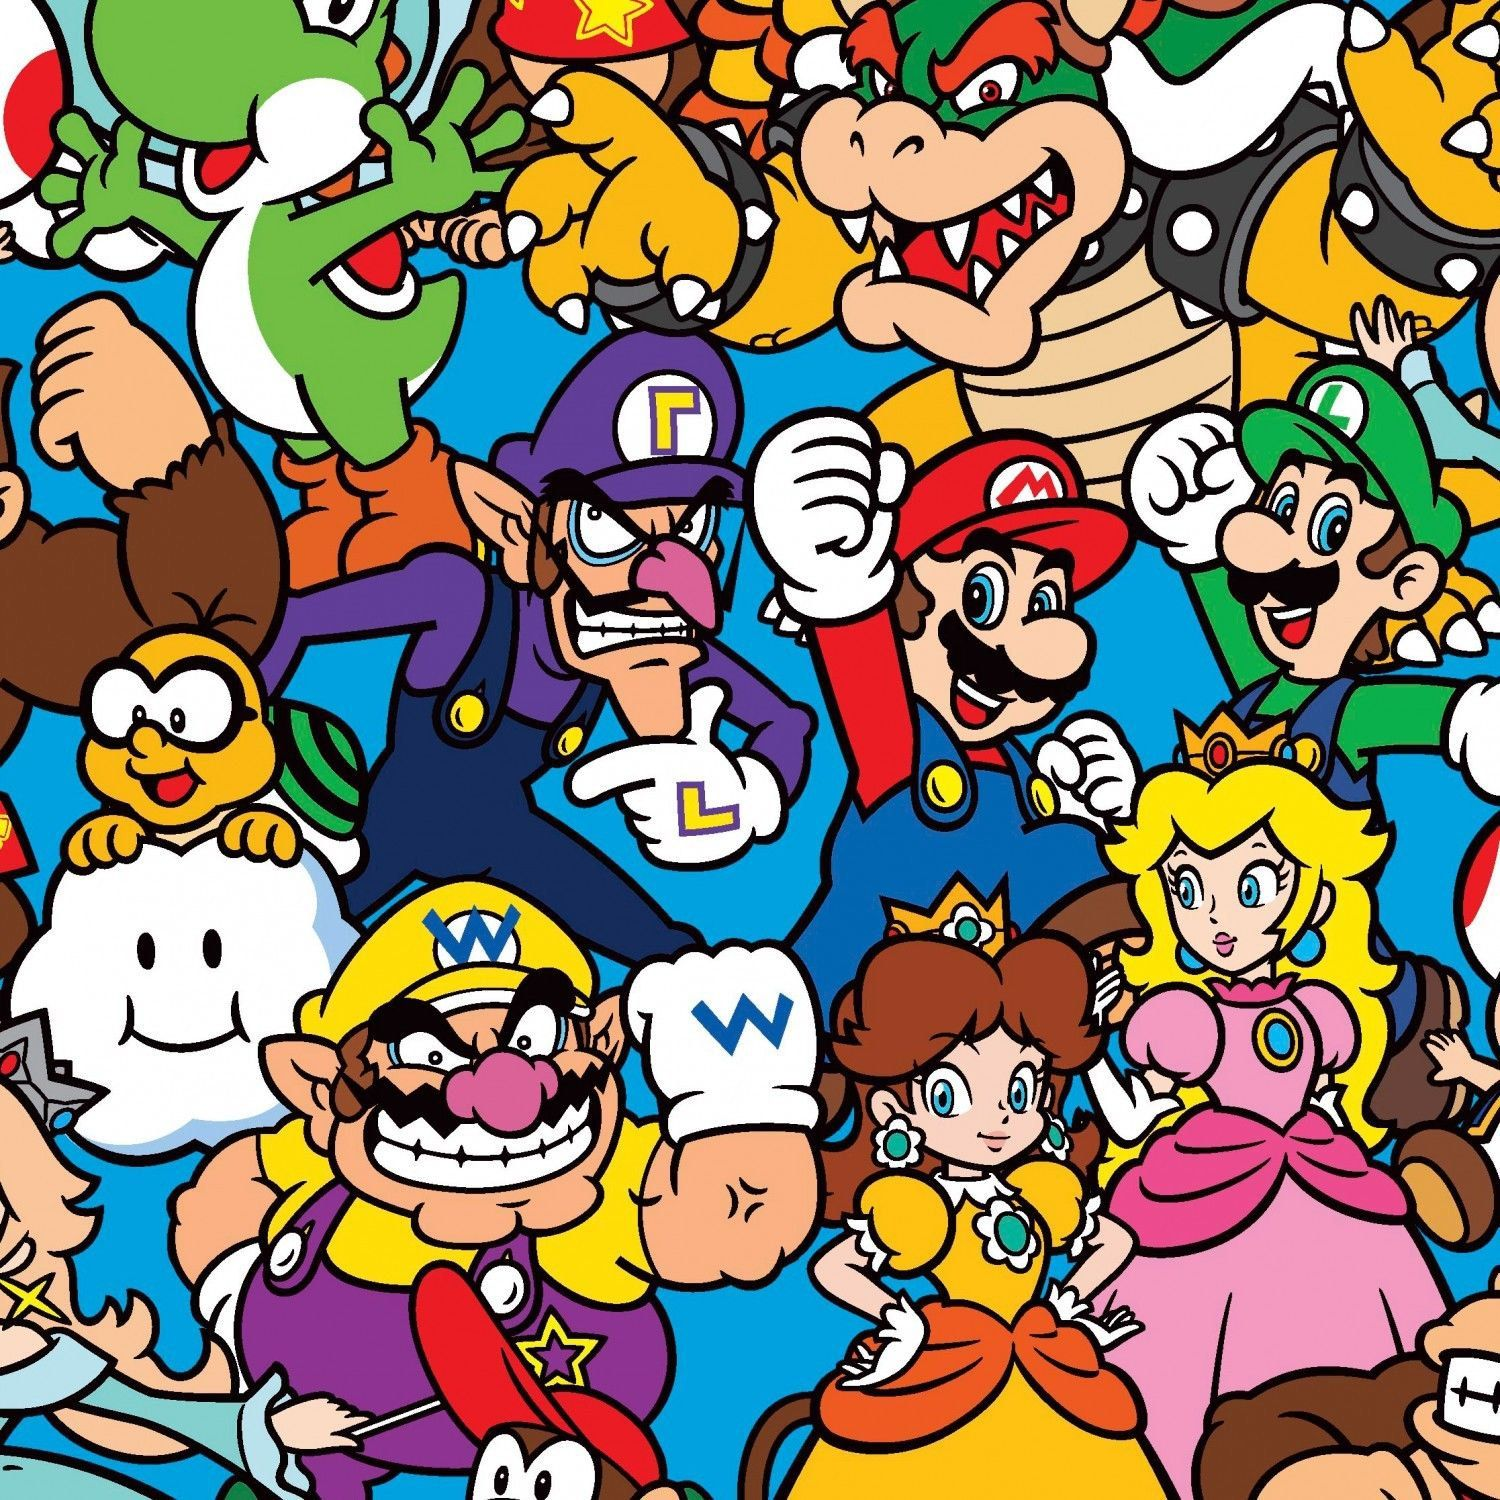 Nintendo Fabric Nintendo Super Mario Characters Packed Multi Colored 100 Cotton Fabric By The Yard 36 X43 A260 By Super Mario Brothers Mario Super Mario